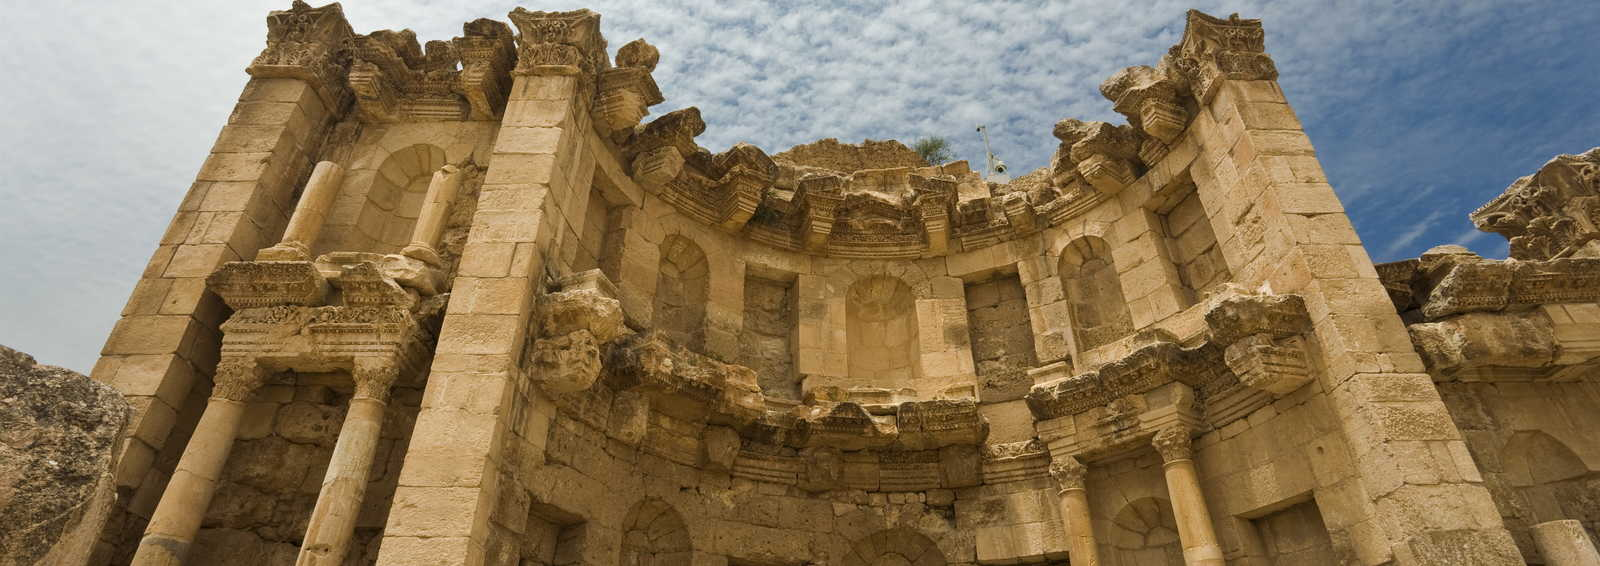 The Nymphaeum in Jerash